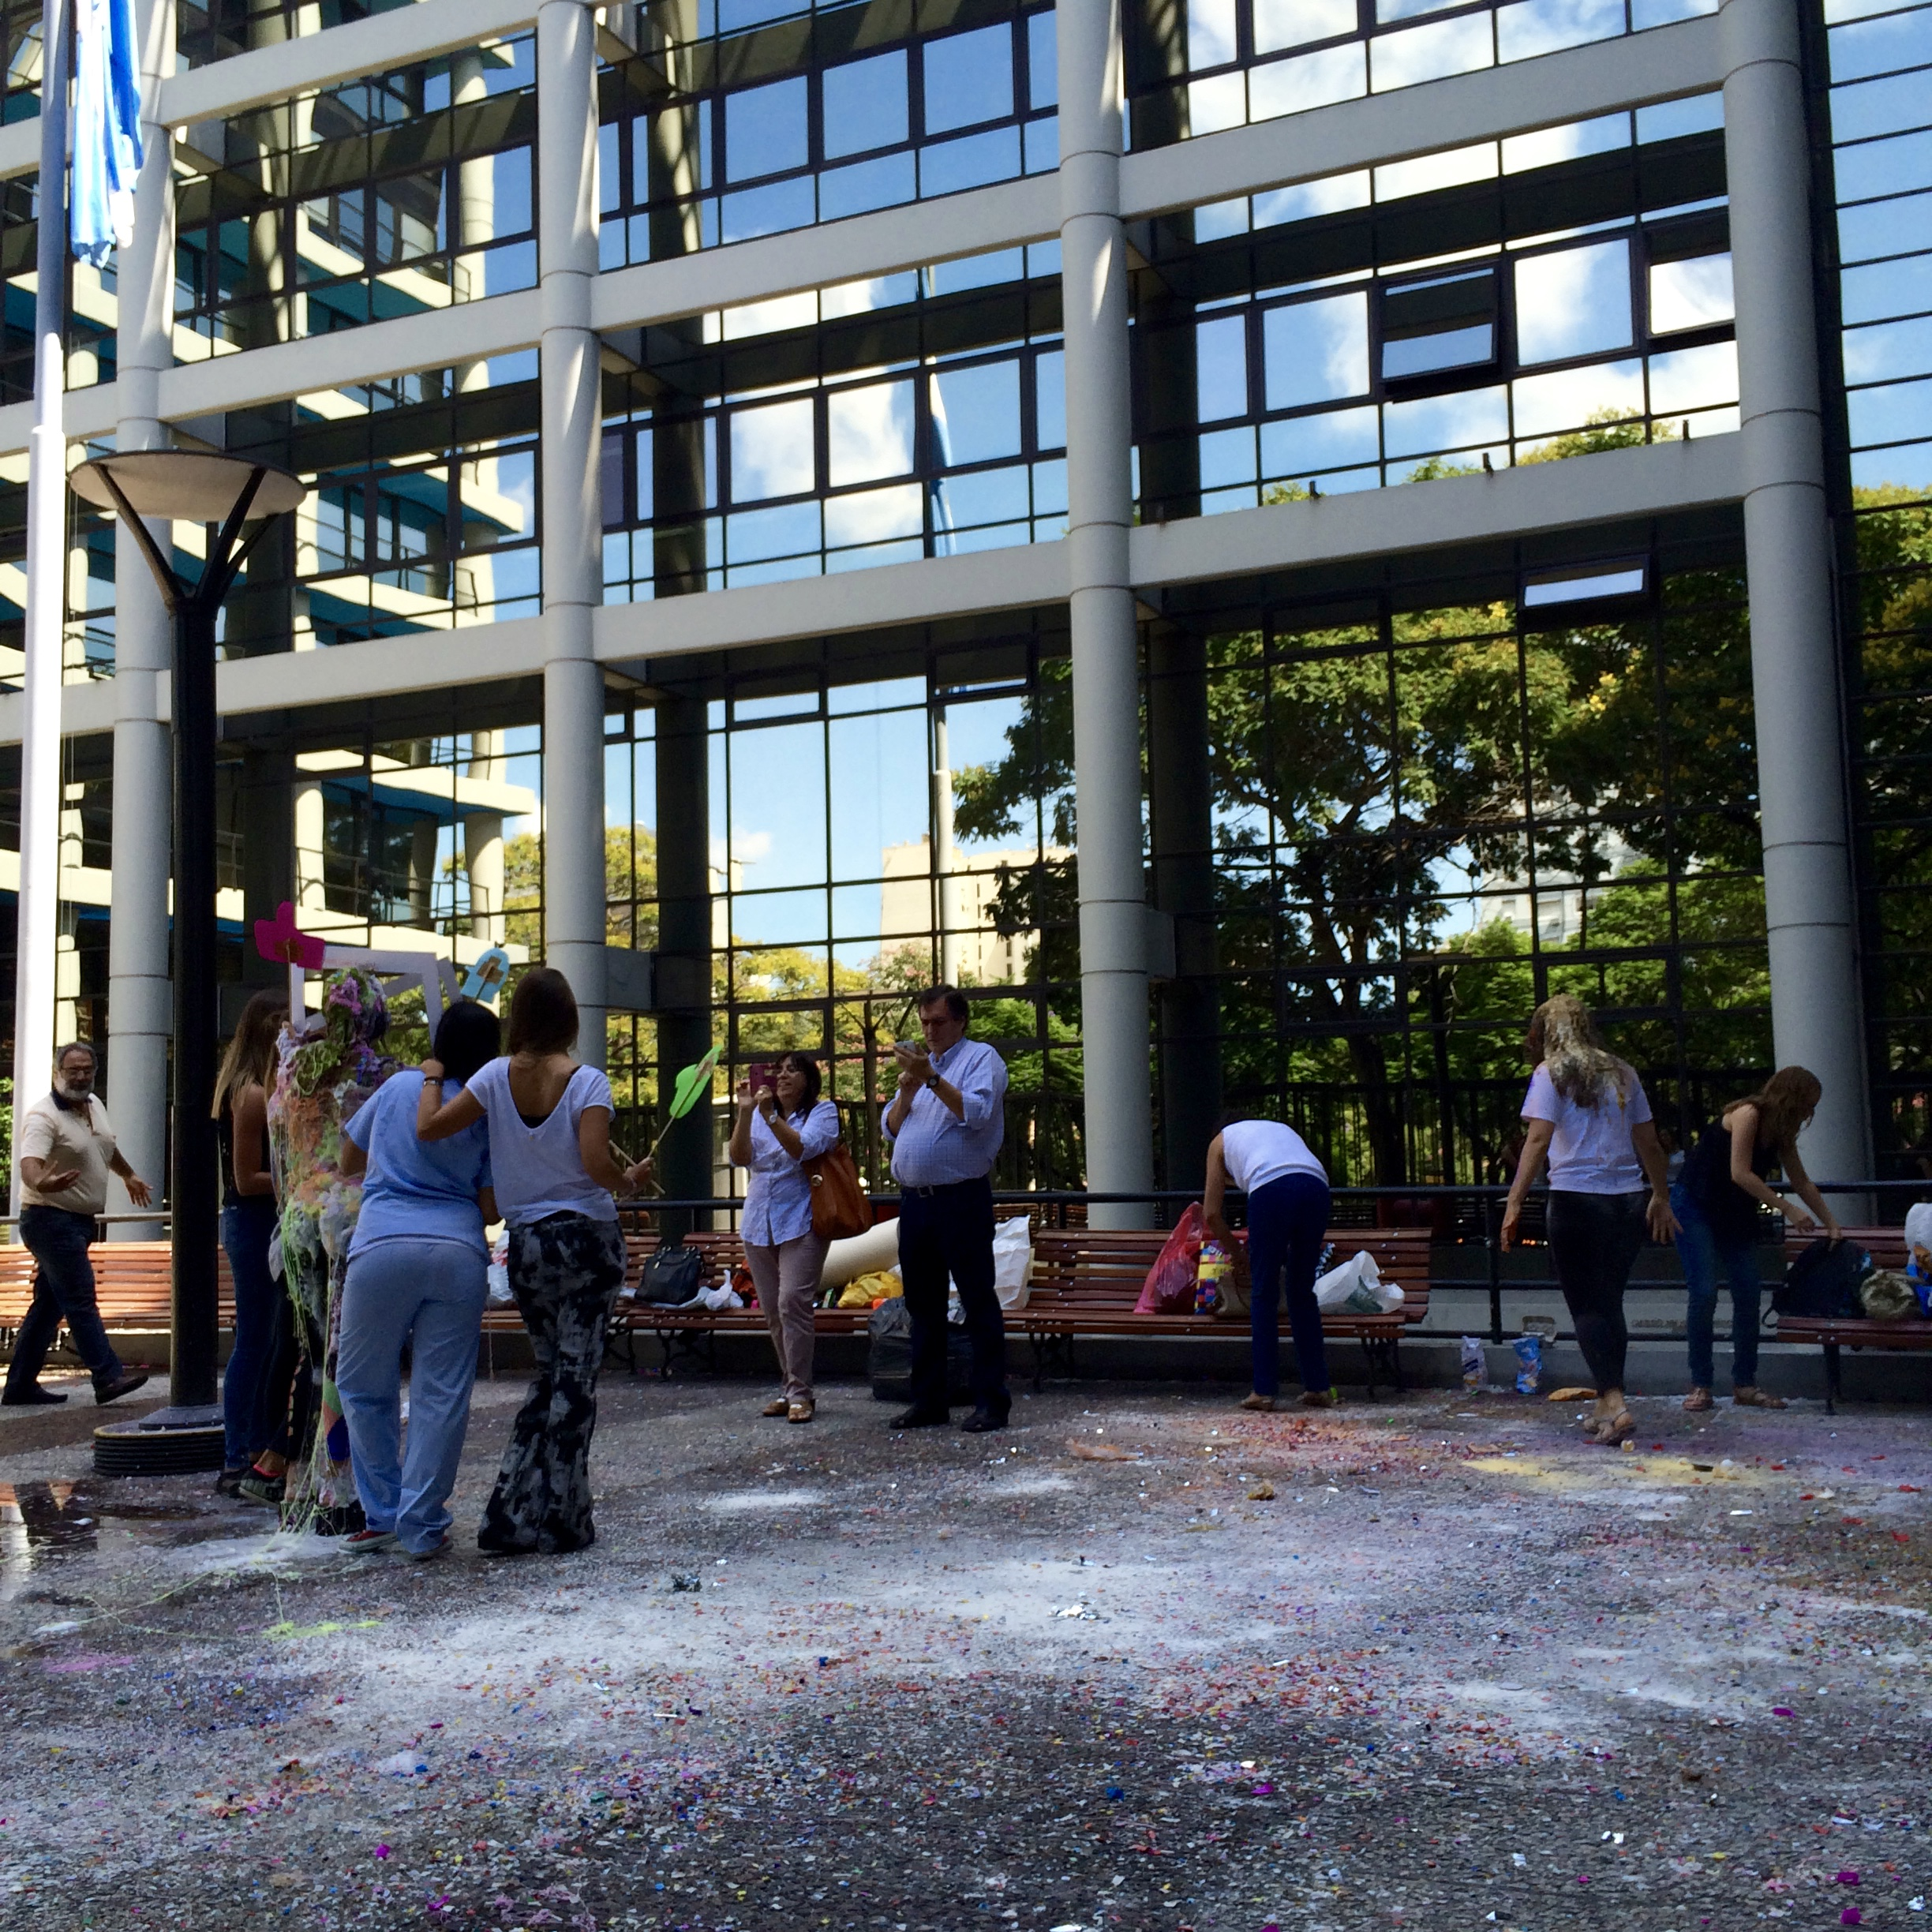 A tradition for graduating students is to celebrate by throwing paint/silly string/RAW EGGS (!) at them in the courtyard. Other than the smell it was sweet!